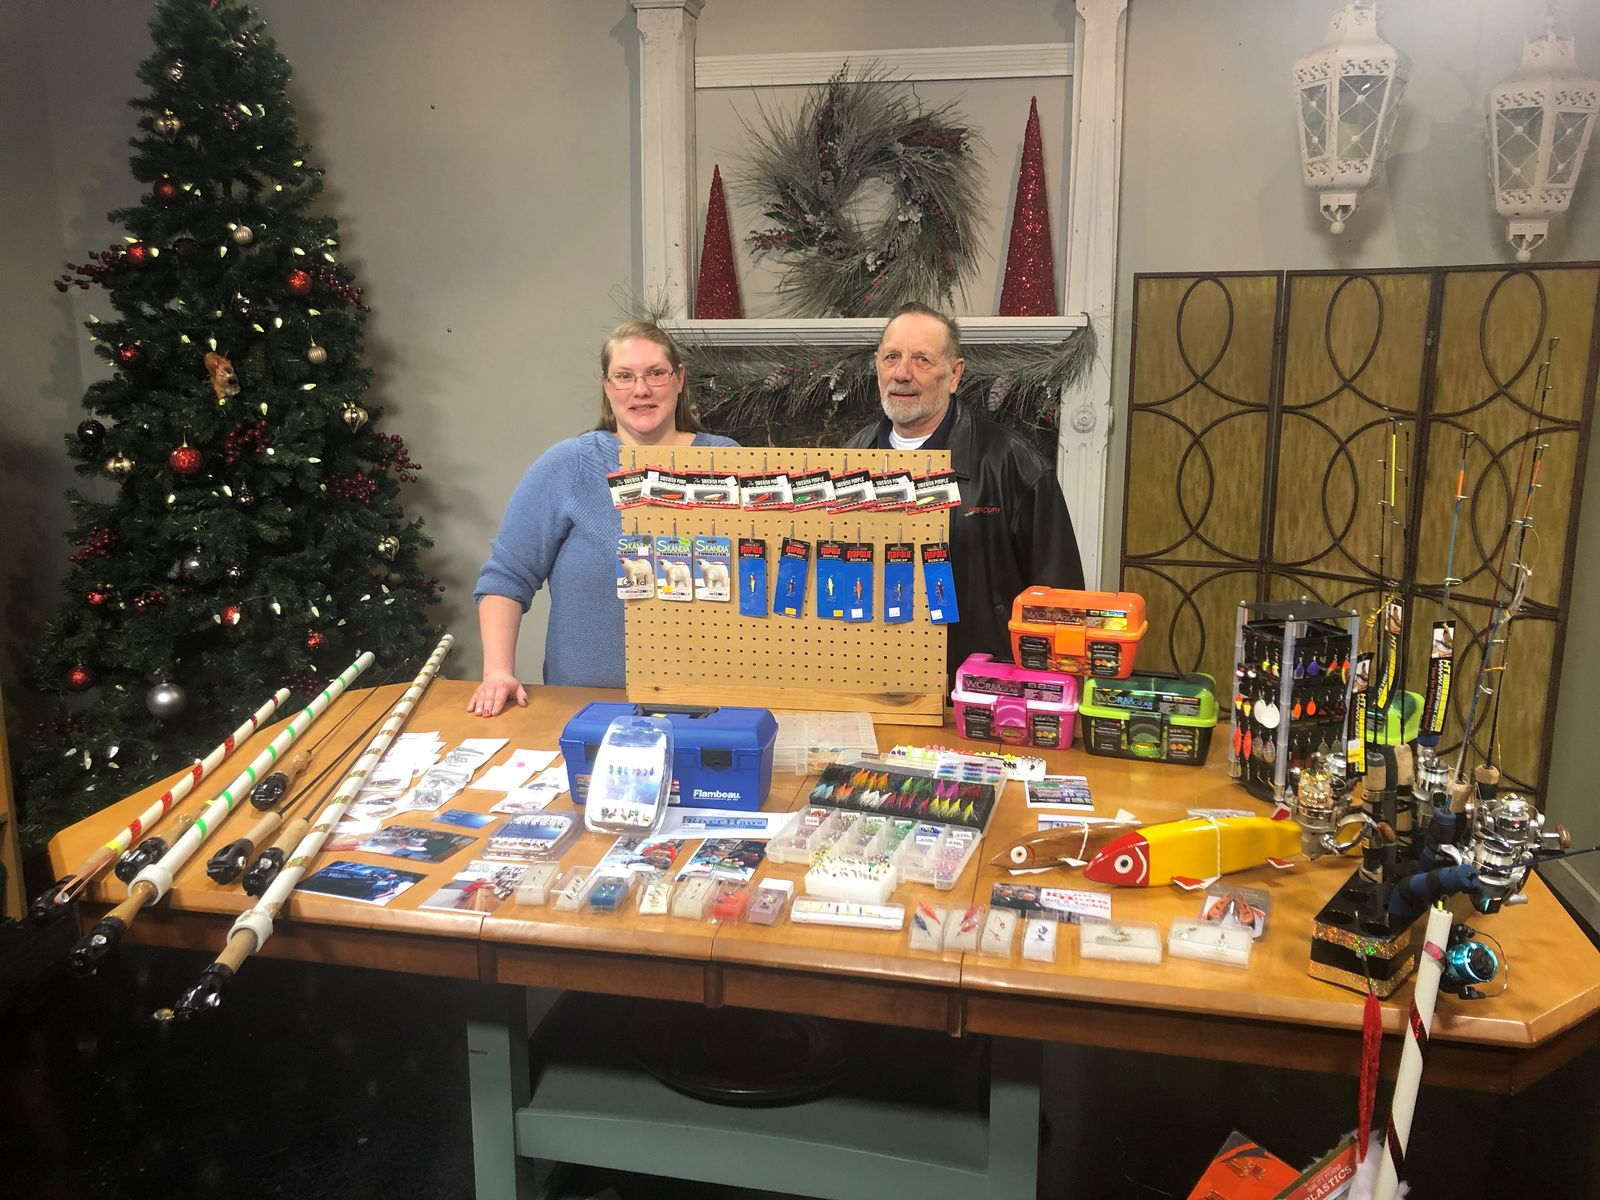 River Haus Bait and Tackle stopped by Good Day Wisconsin as a part of our Small Shop Showcase, December 6, 2019. (WLUK image)